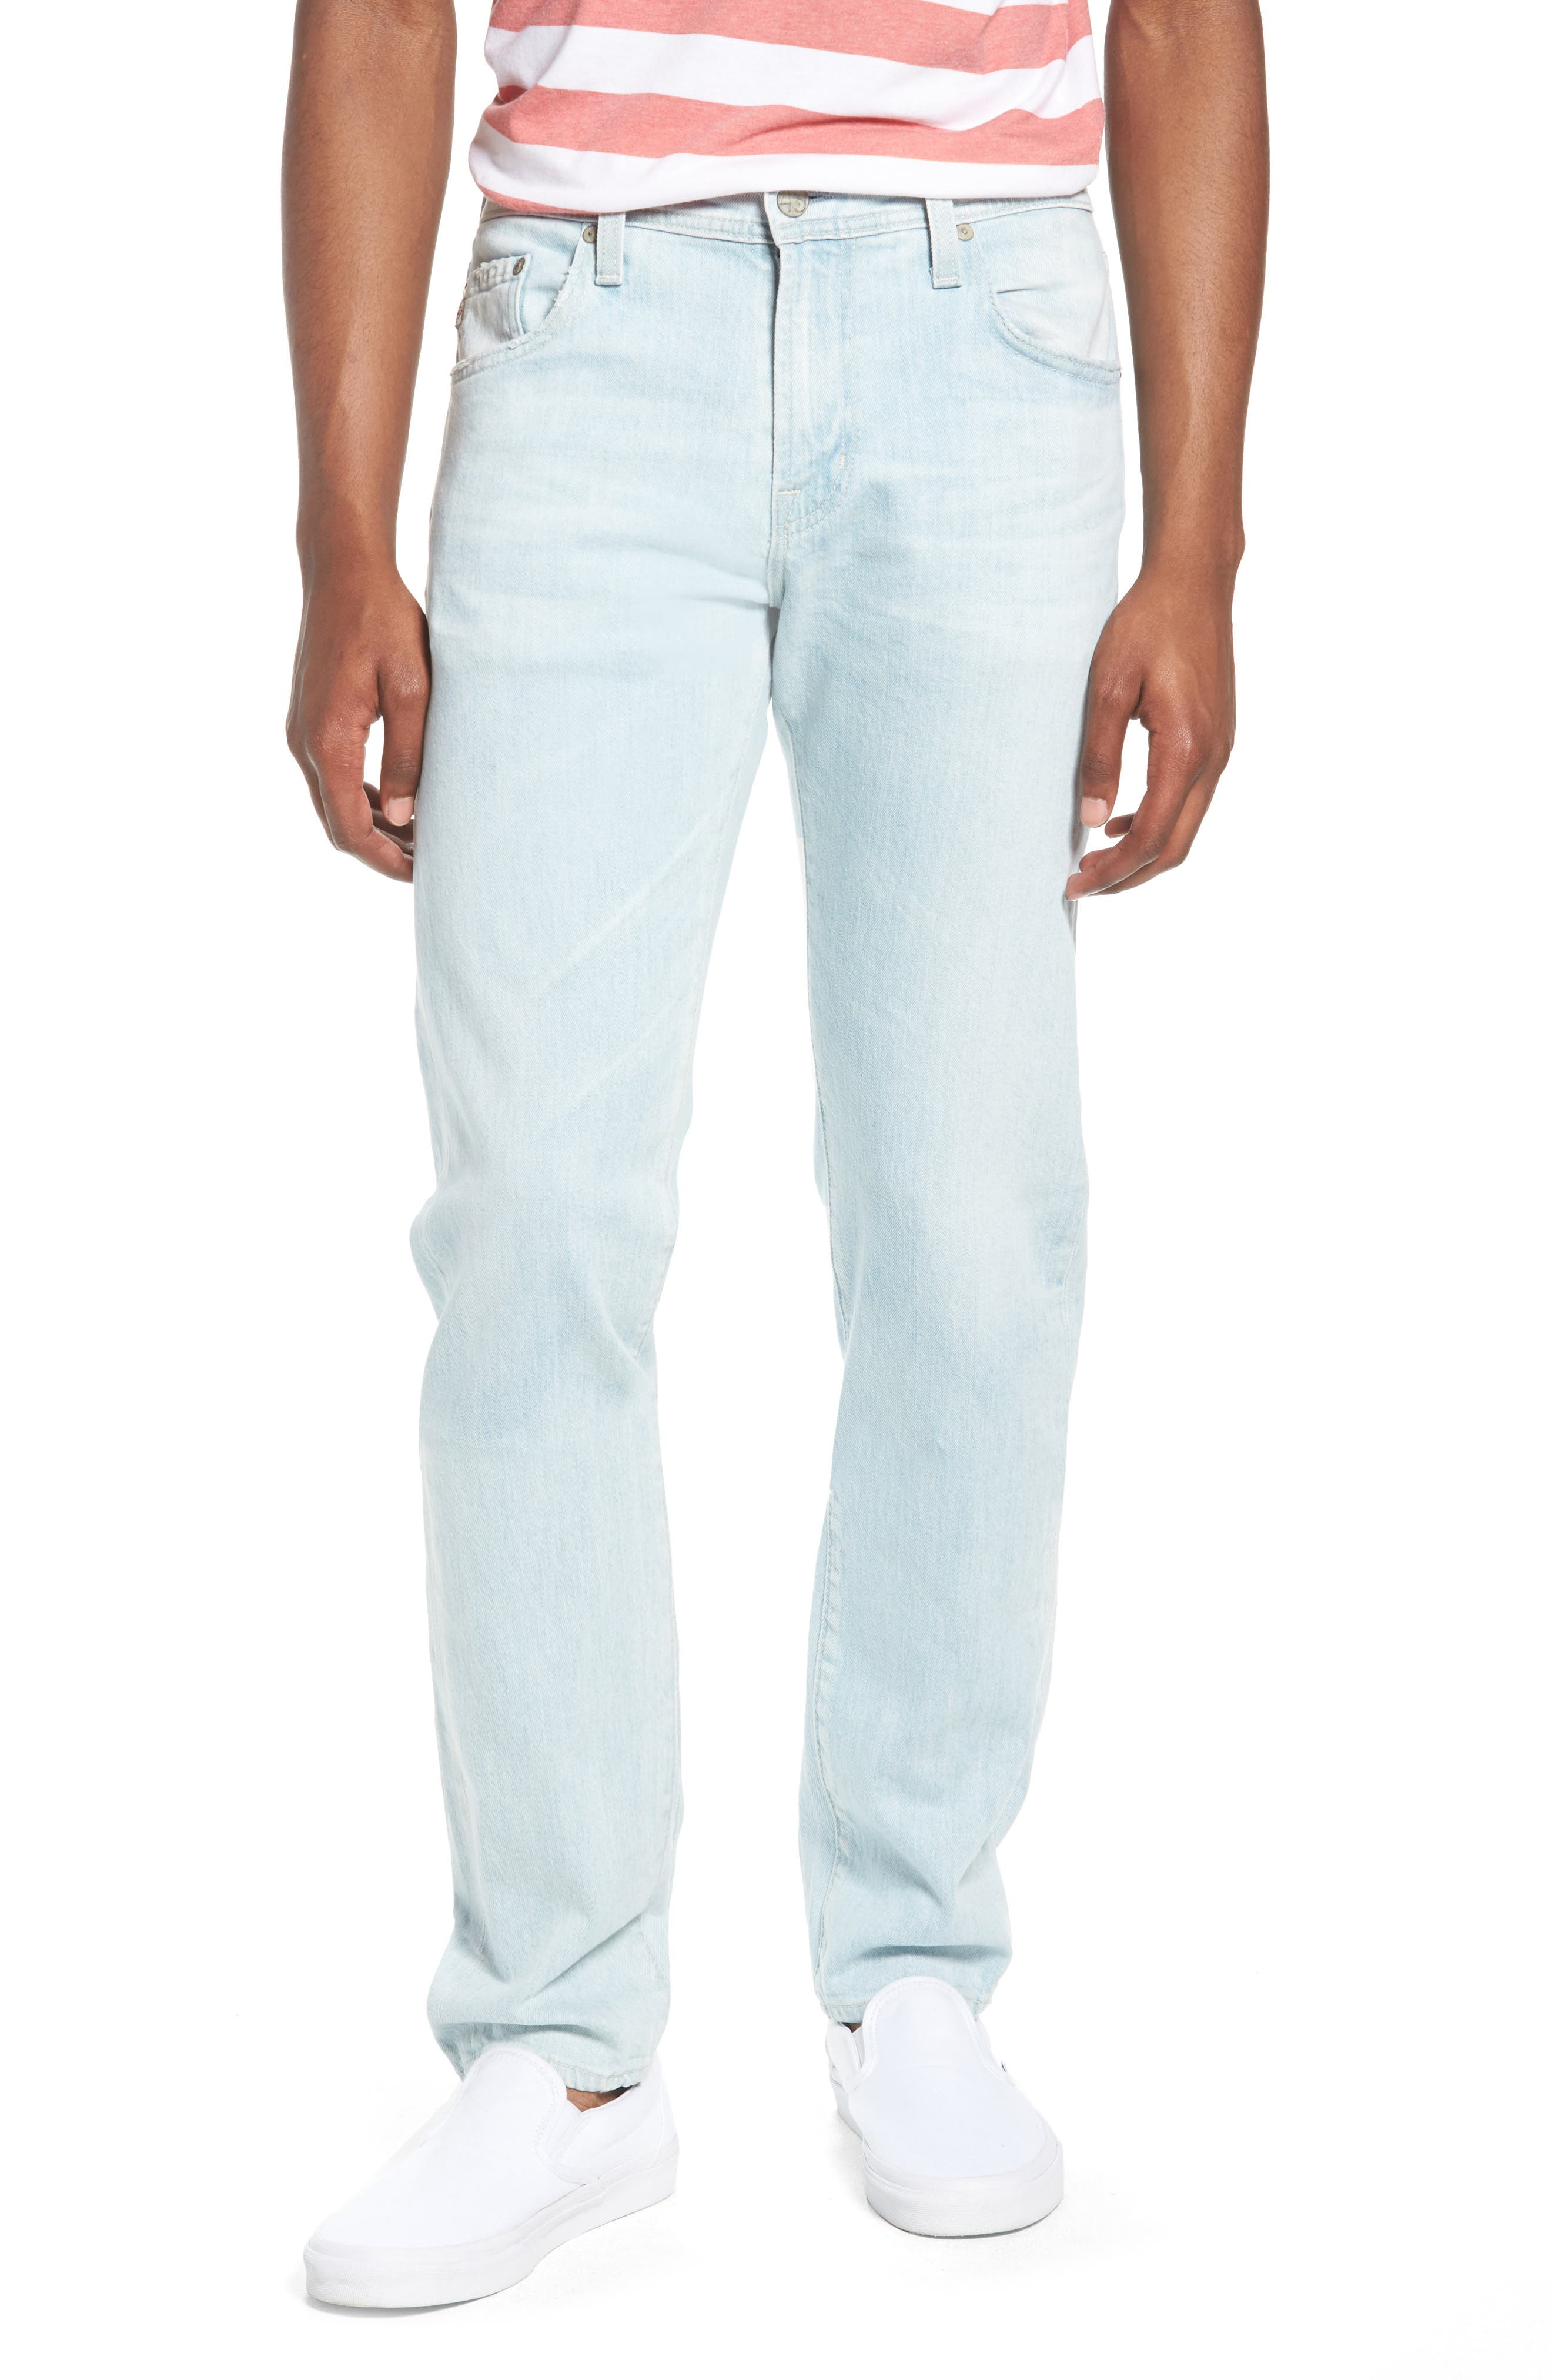 Dylan Skinny Fit Jeans,                             Main thumbnail 1, color,                             28 Years Salt Mist